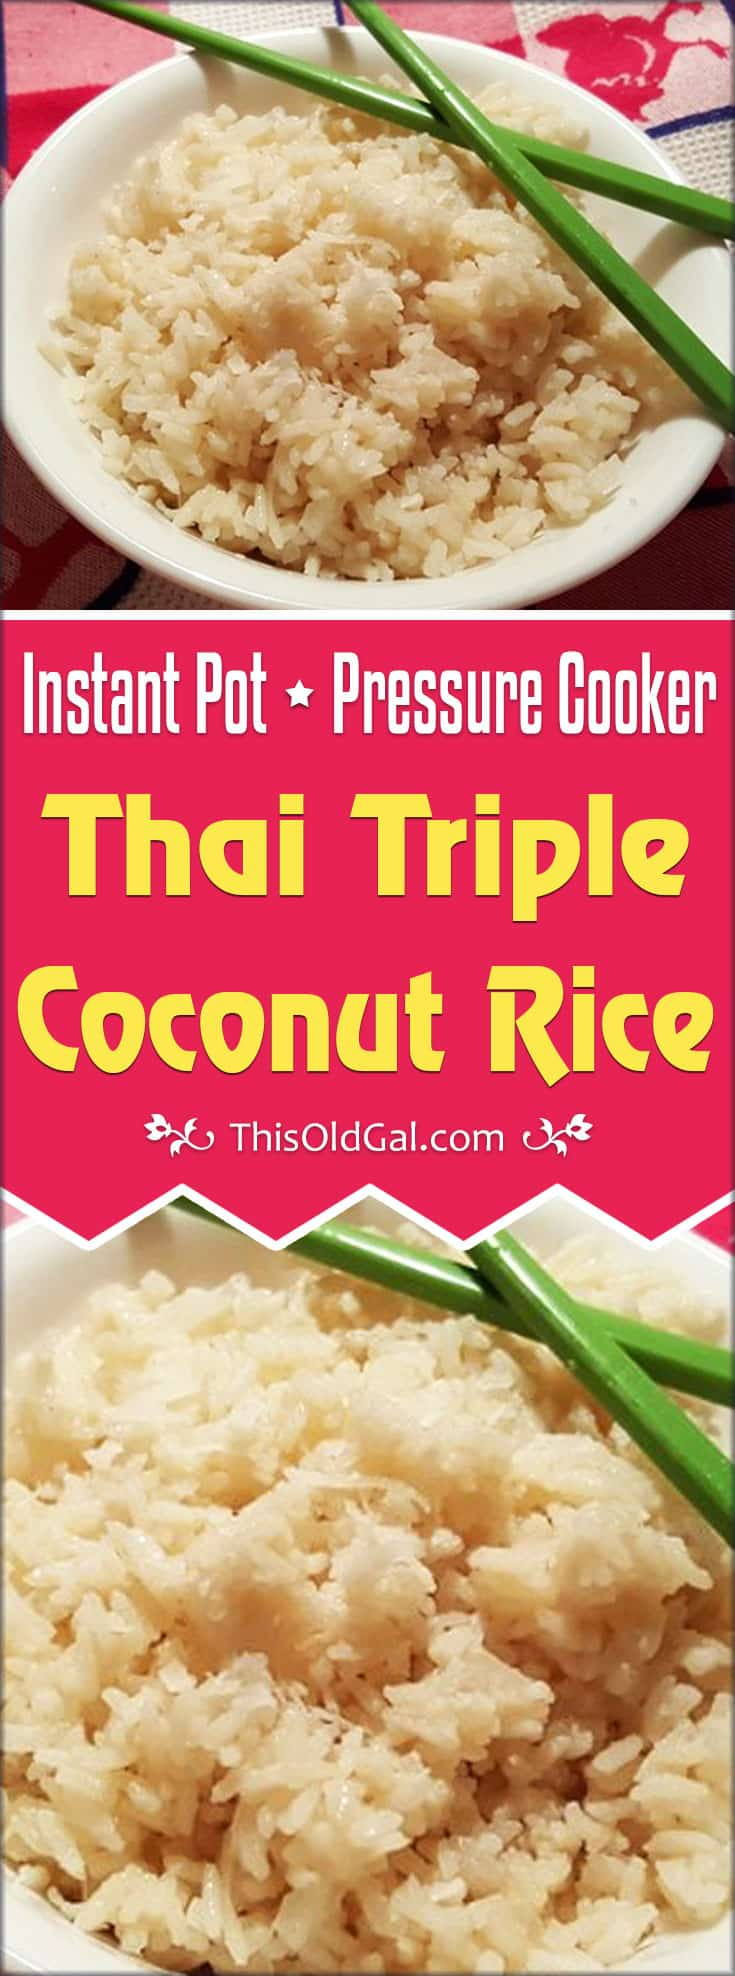 Pressure Cooker Thai Triple Coconut Rice